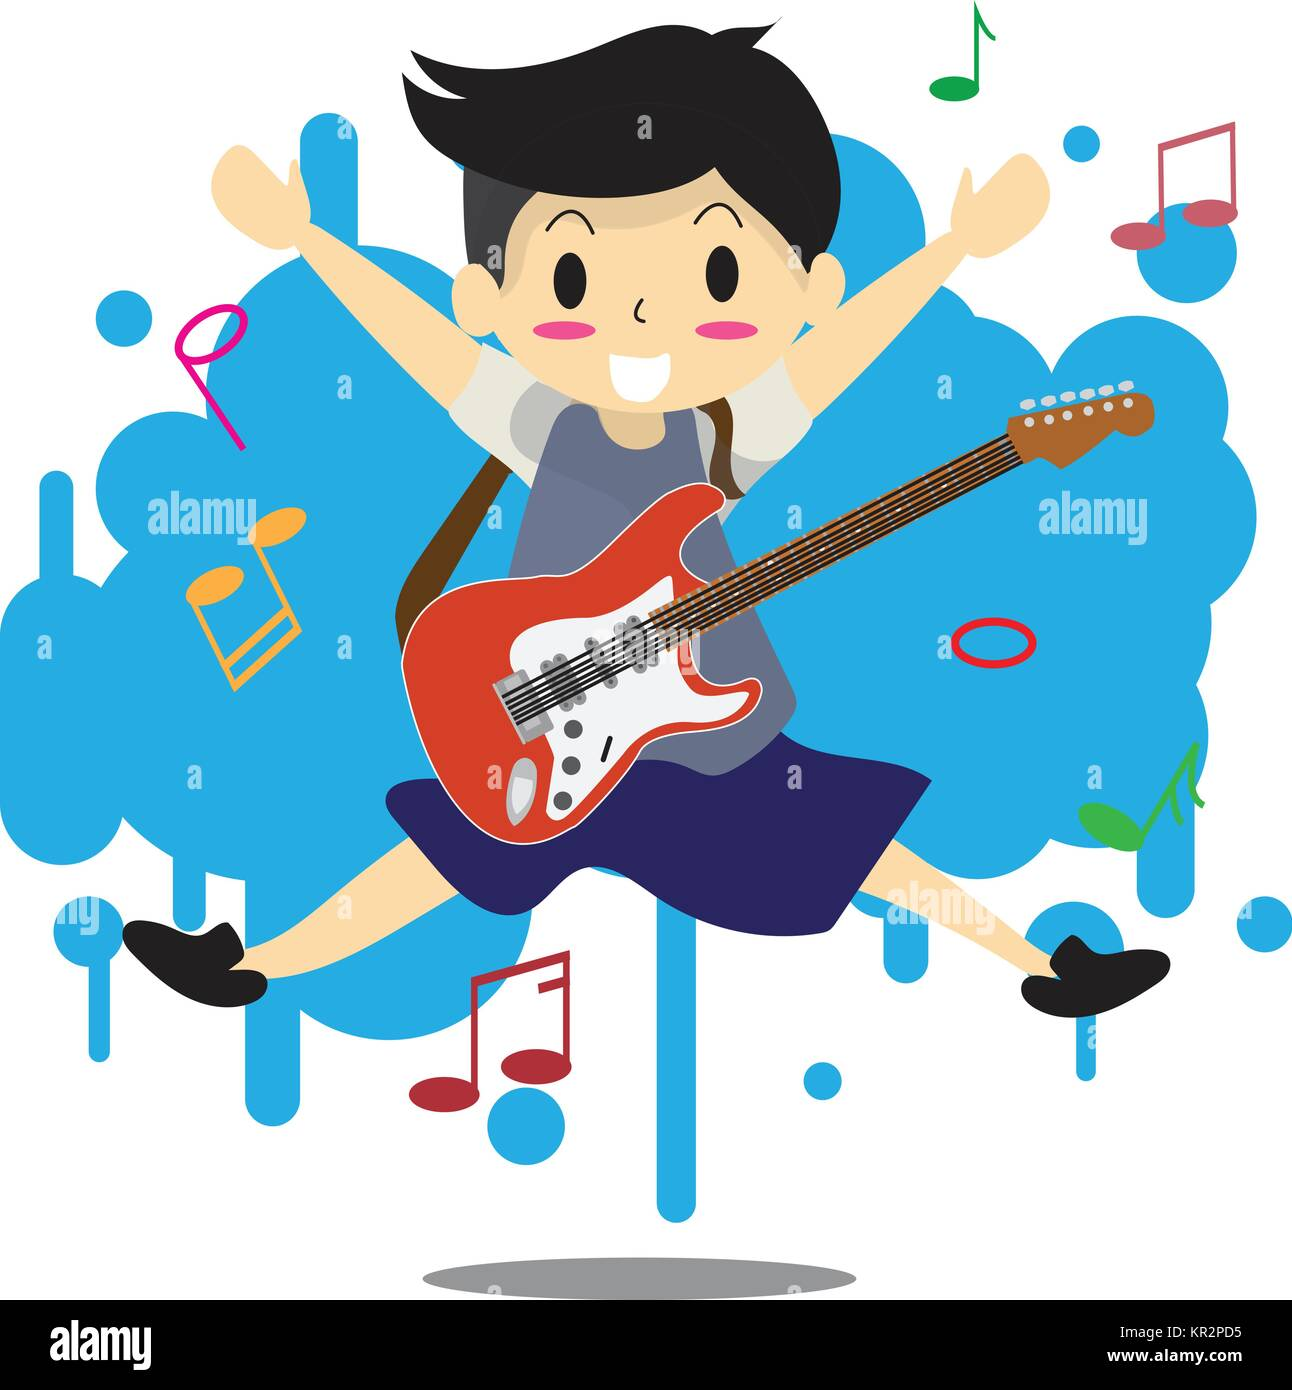 Young Boy Playing Electric Rock Guitar Happy Love Music Abstract Background Character Design Illustration Vector In Cartoon Style